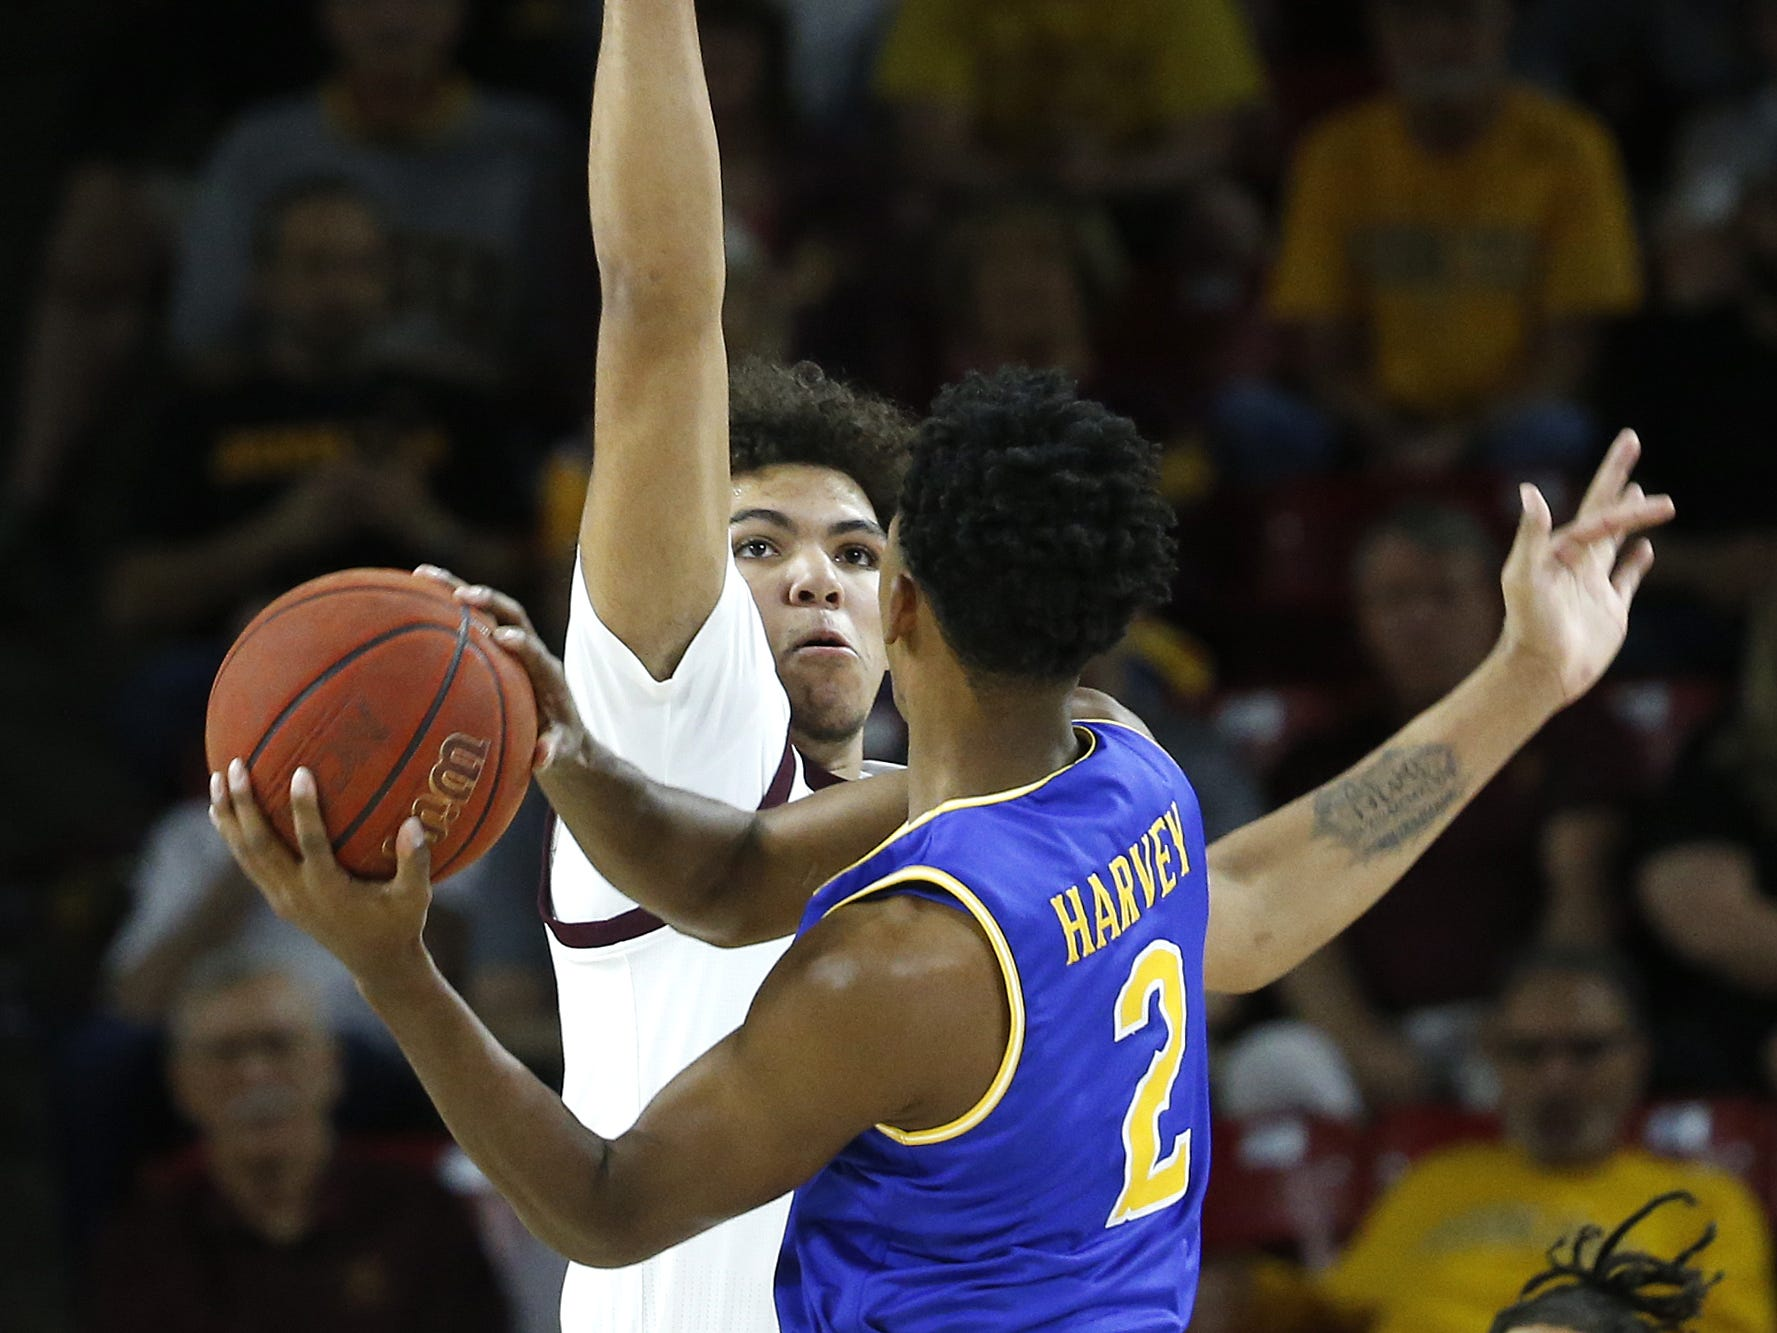 Arizona State's Taeshon Cherry (35) defends McNeese State's James Harvey (2) during the first half at Wells Fargo Arena in Tempe, Ariz. on November 9, 2018.